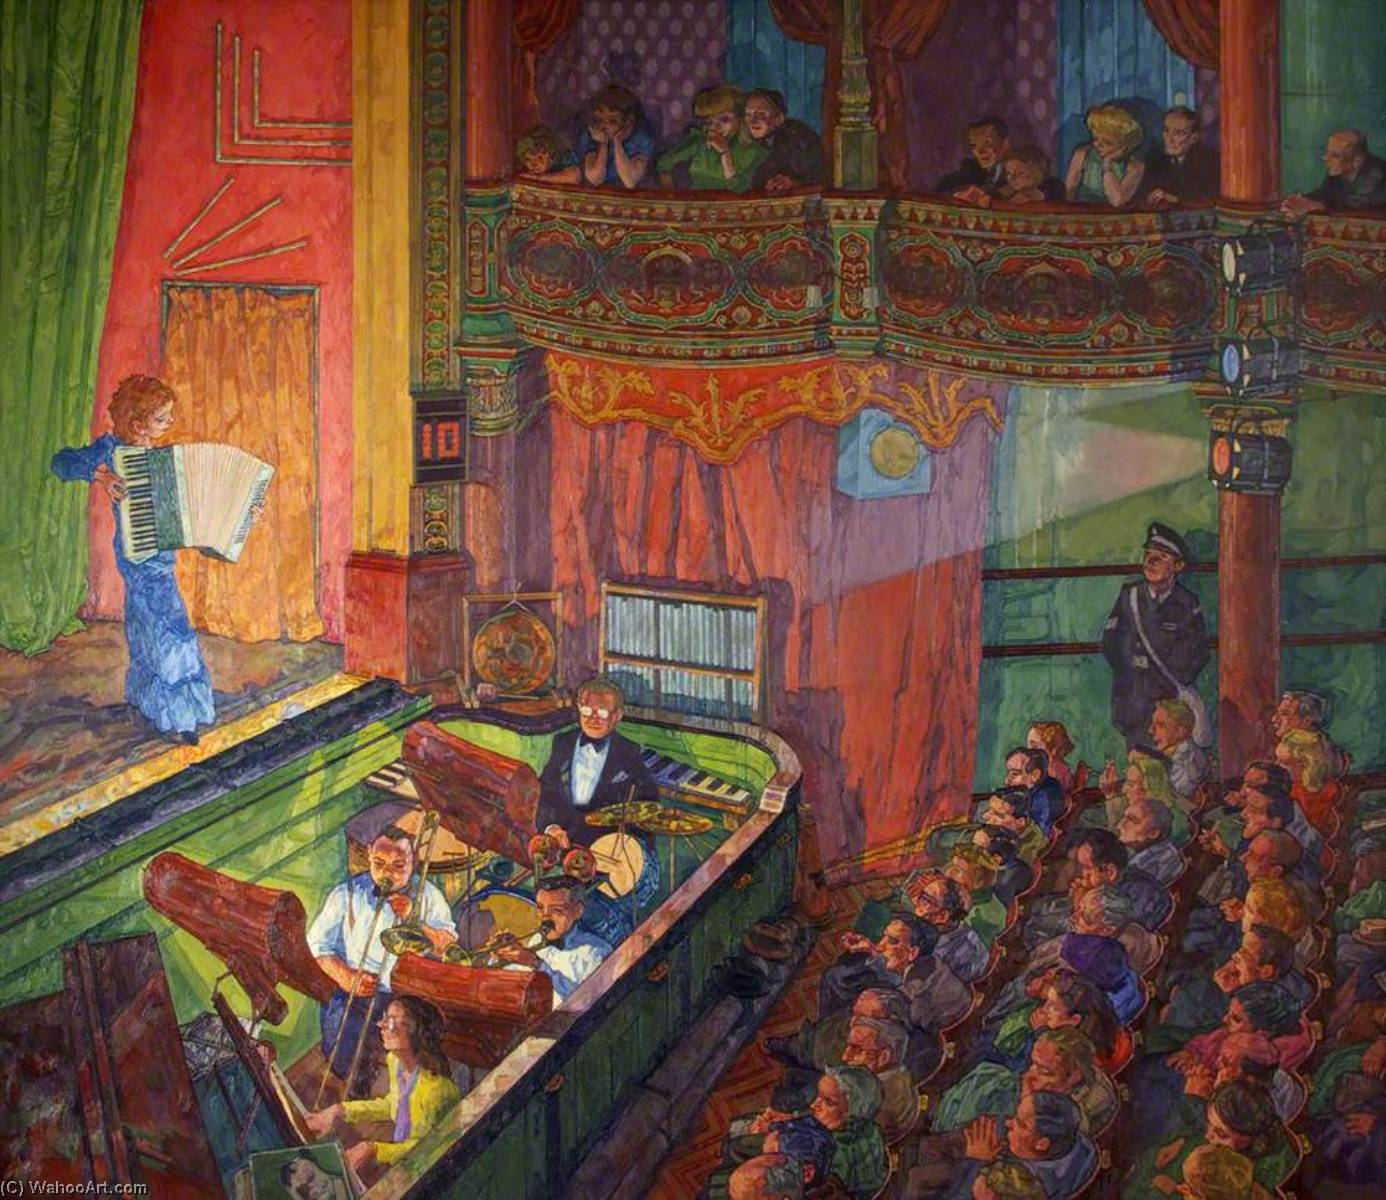 Wikioo.org - The Encyclopedia of Fine Arts - Painting, Artwork by Francis Hewlett - Accordion Player